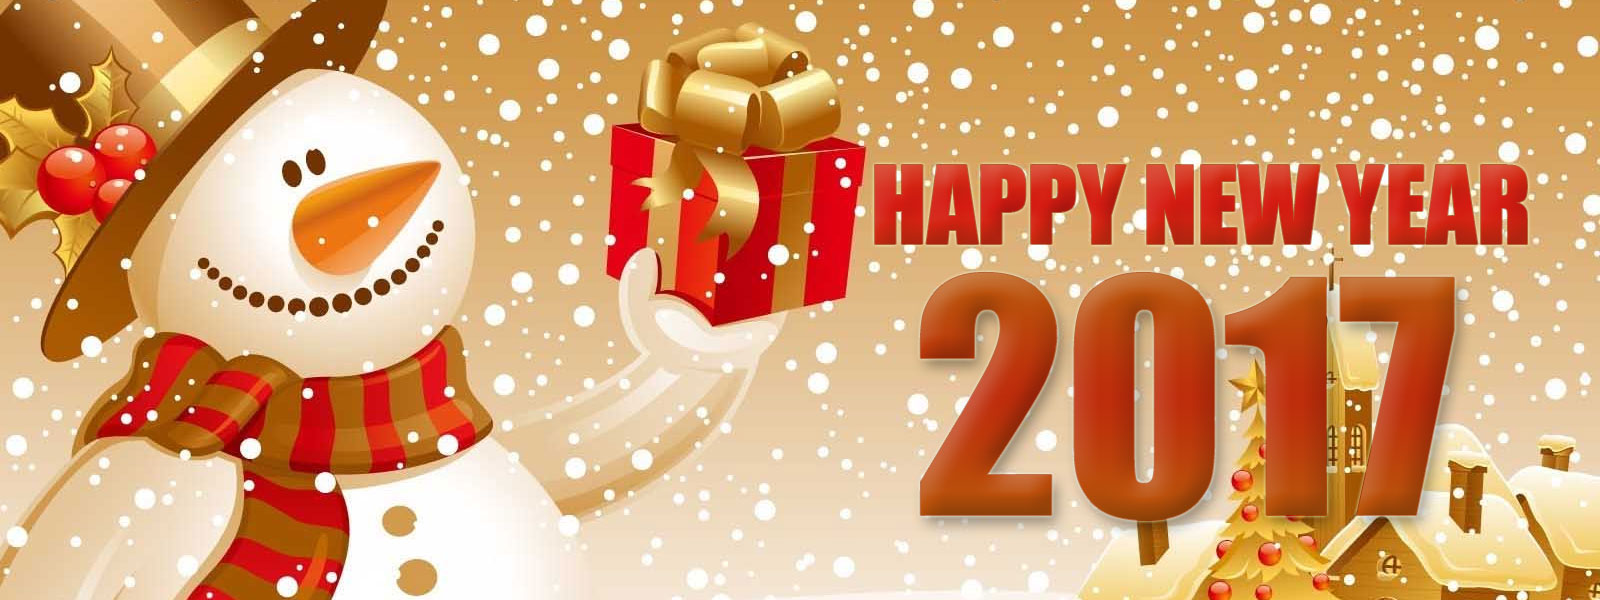 A Very Happy New Year 2017 To All